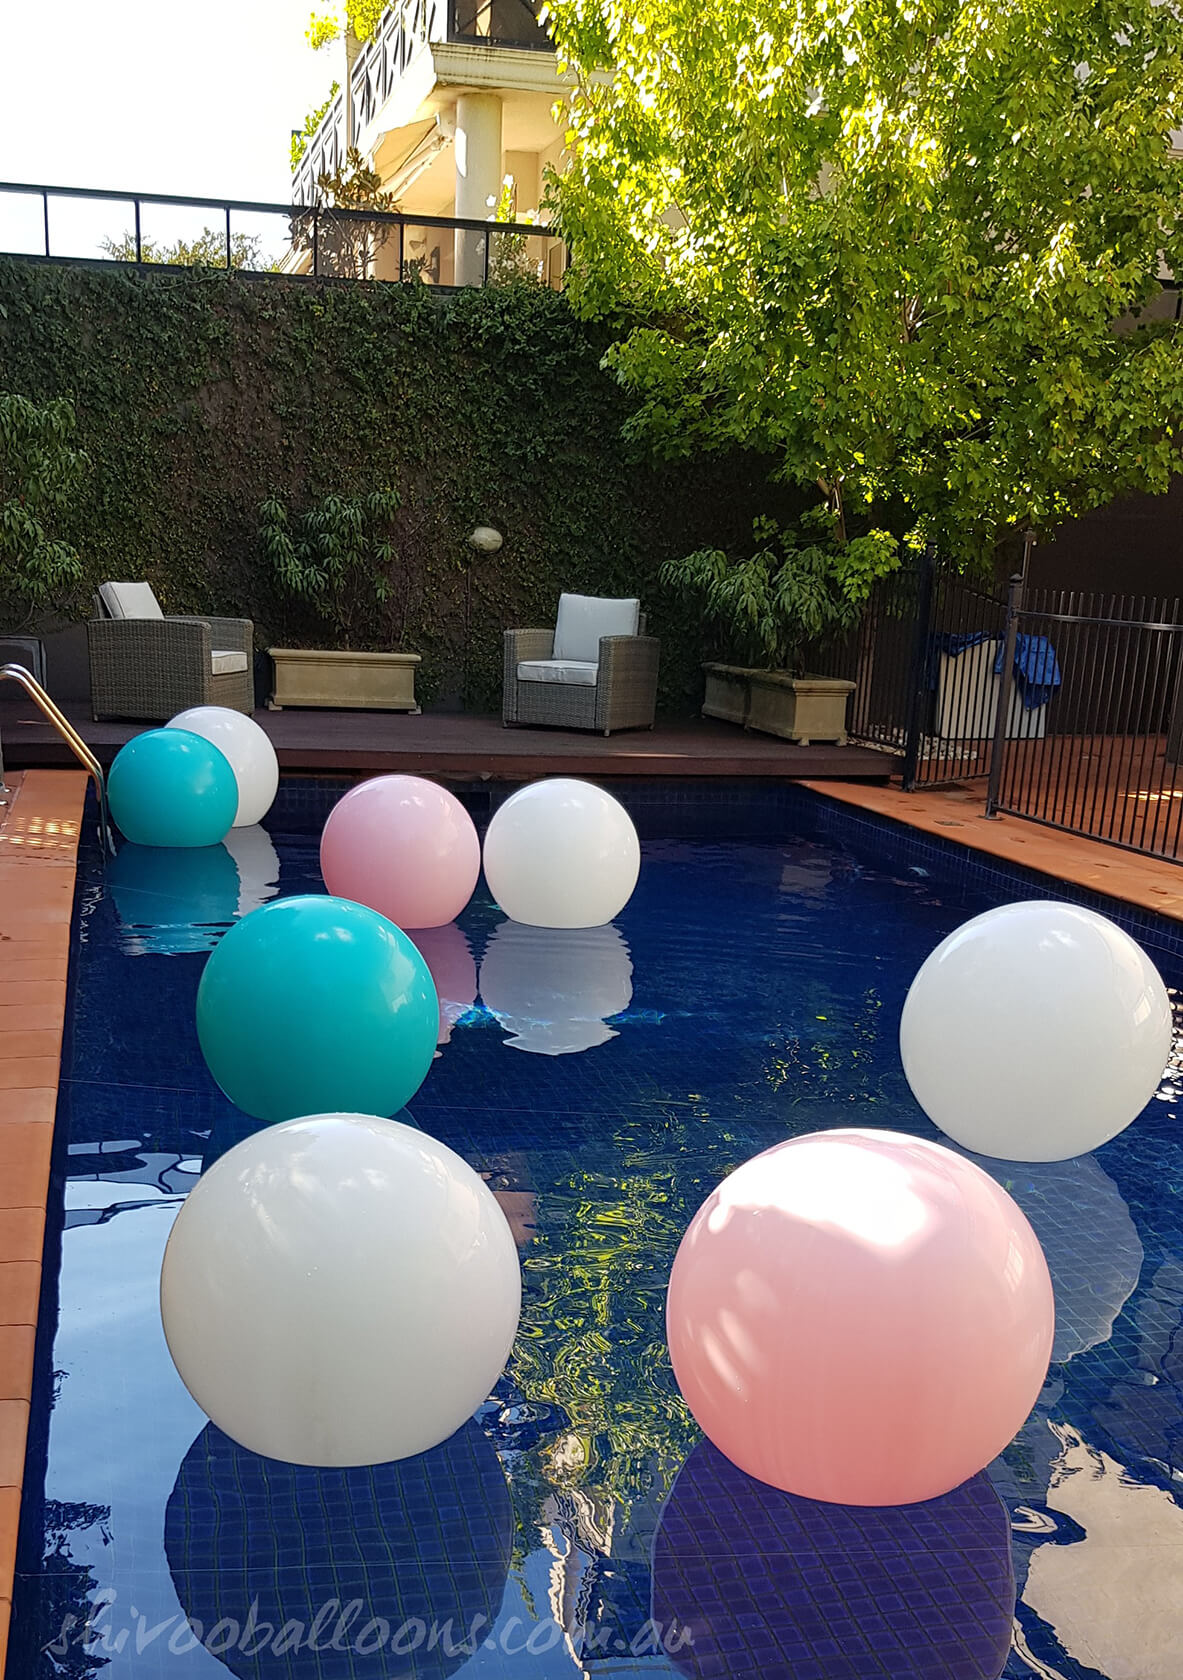 CE-54 - corporate - business event decor - shivoo balloons and decor specialists in coburg north